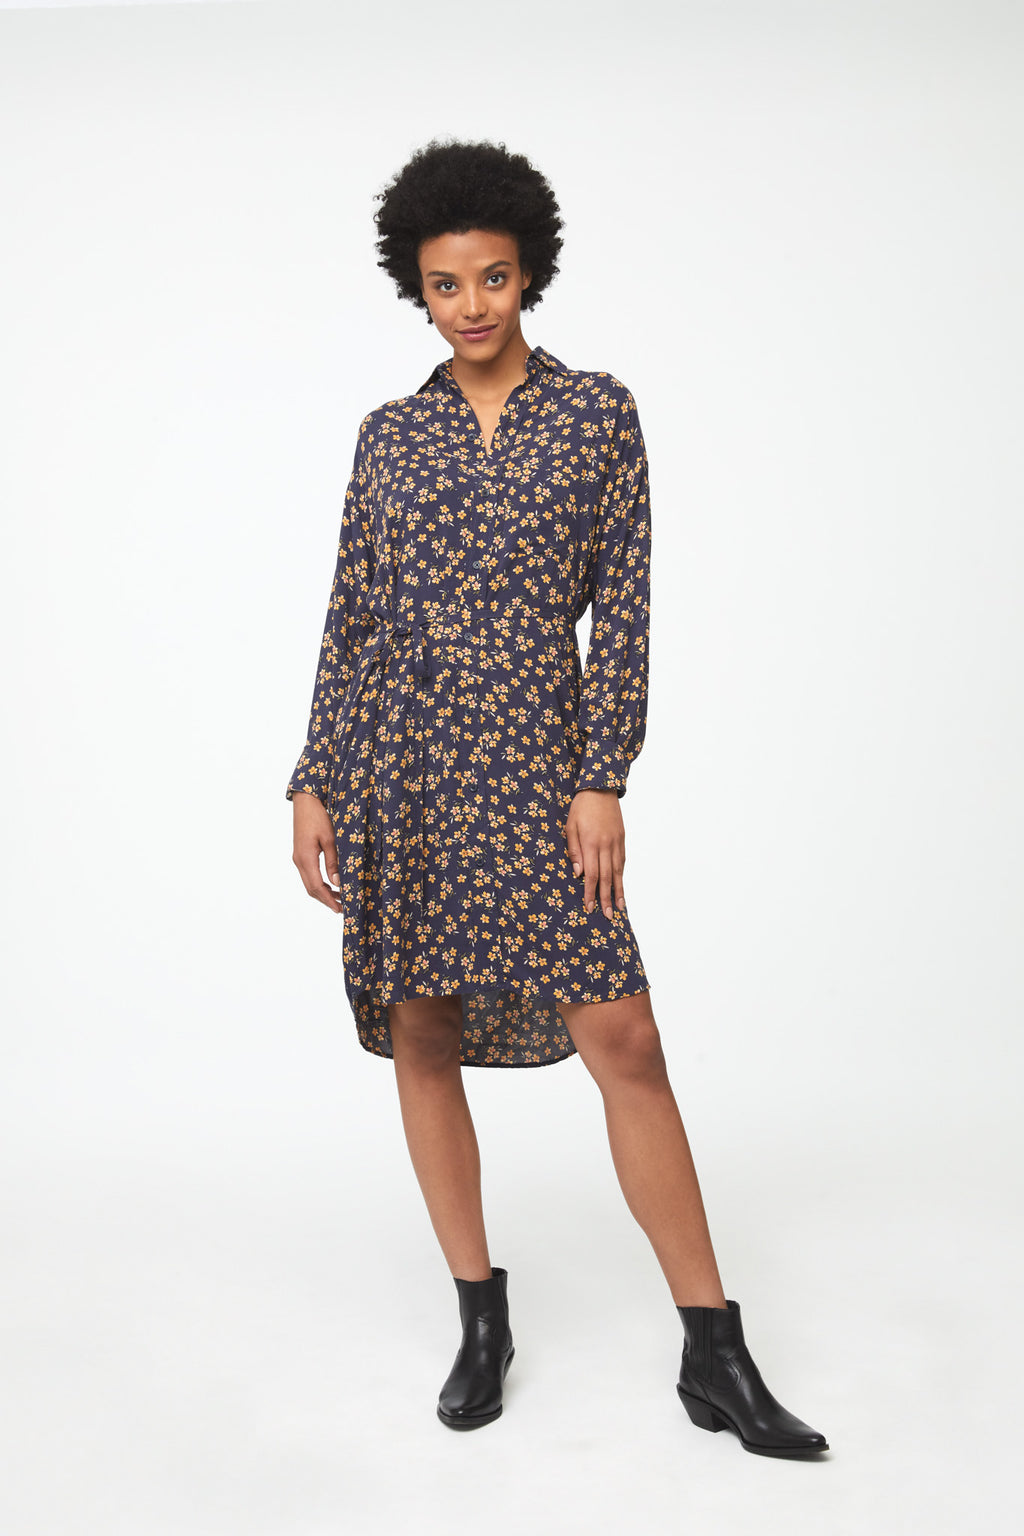 Woman wearing navy floral print, long sleeve, collared, button-front shirt dress with self-belt